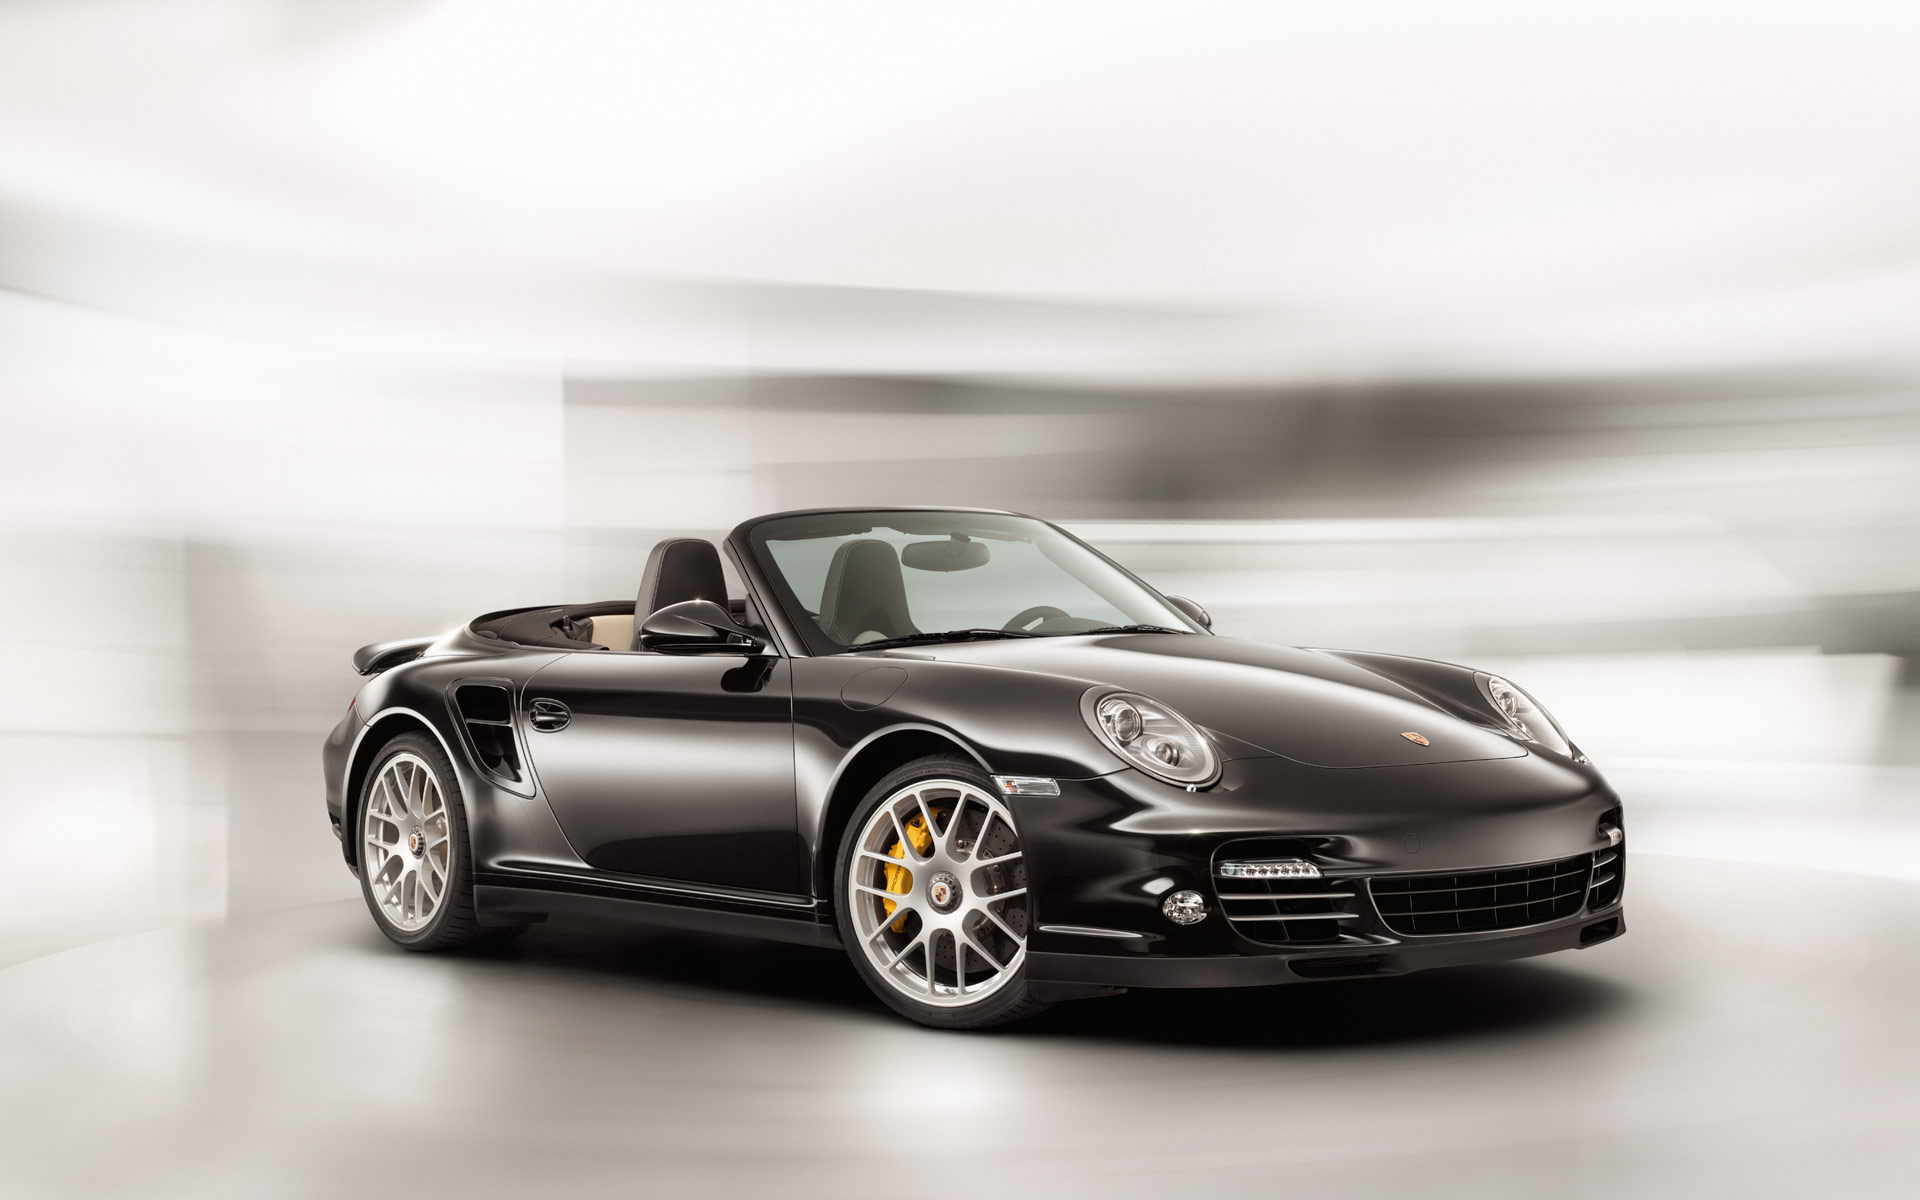 porsche 911 turbo s cabrio photos and comments www. Black Bedroom Furniture Sets. Home Design Ideas